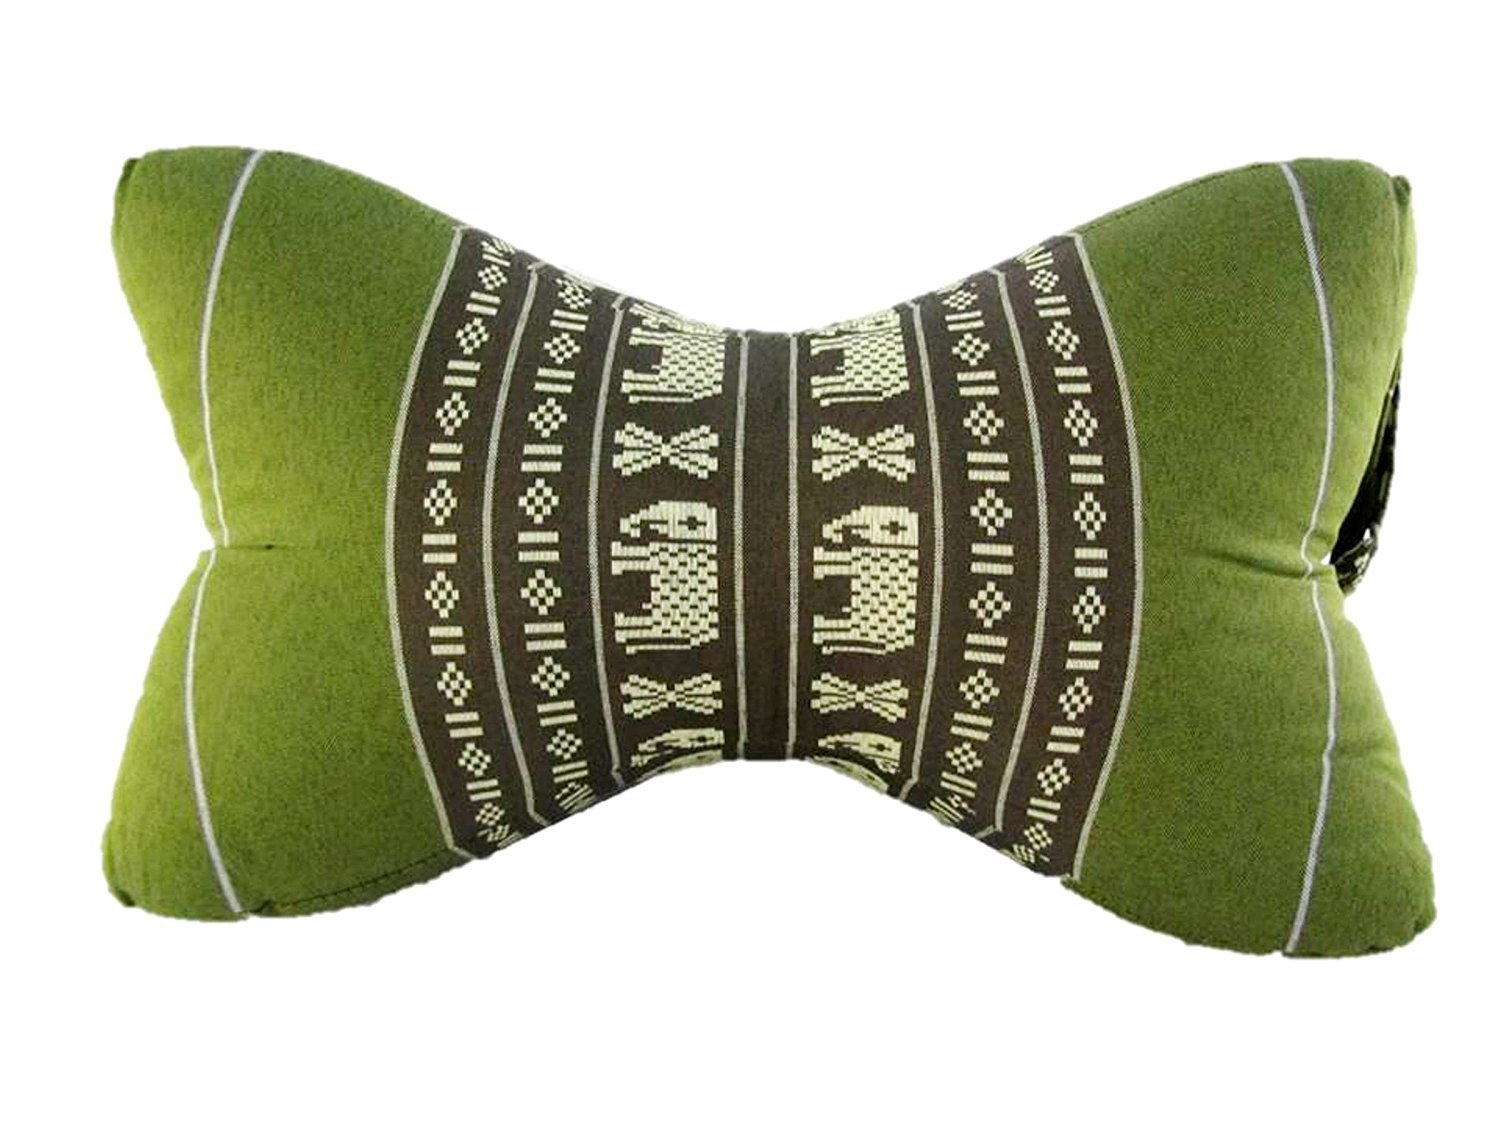 Thai Kapok Filling Daybed Reading Bed Rest Knee Wedge Bone Shaped Neck Pillow (Big Bone Elephant Green Tea) by Mongkol Brand